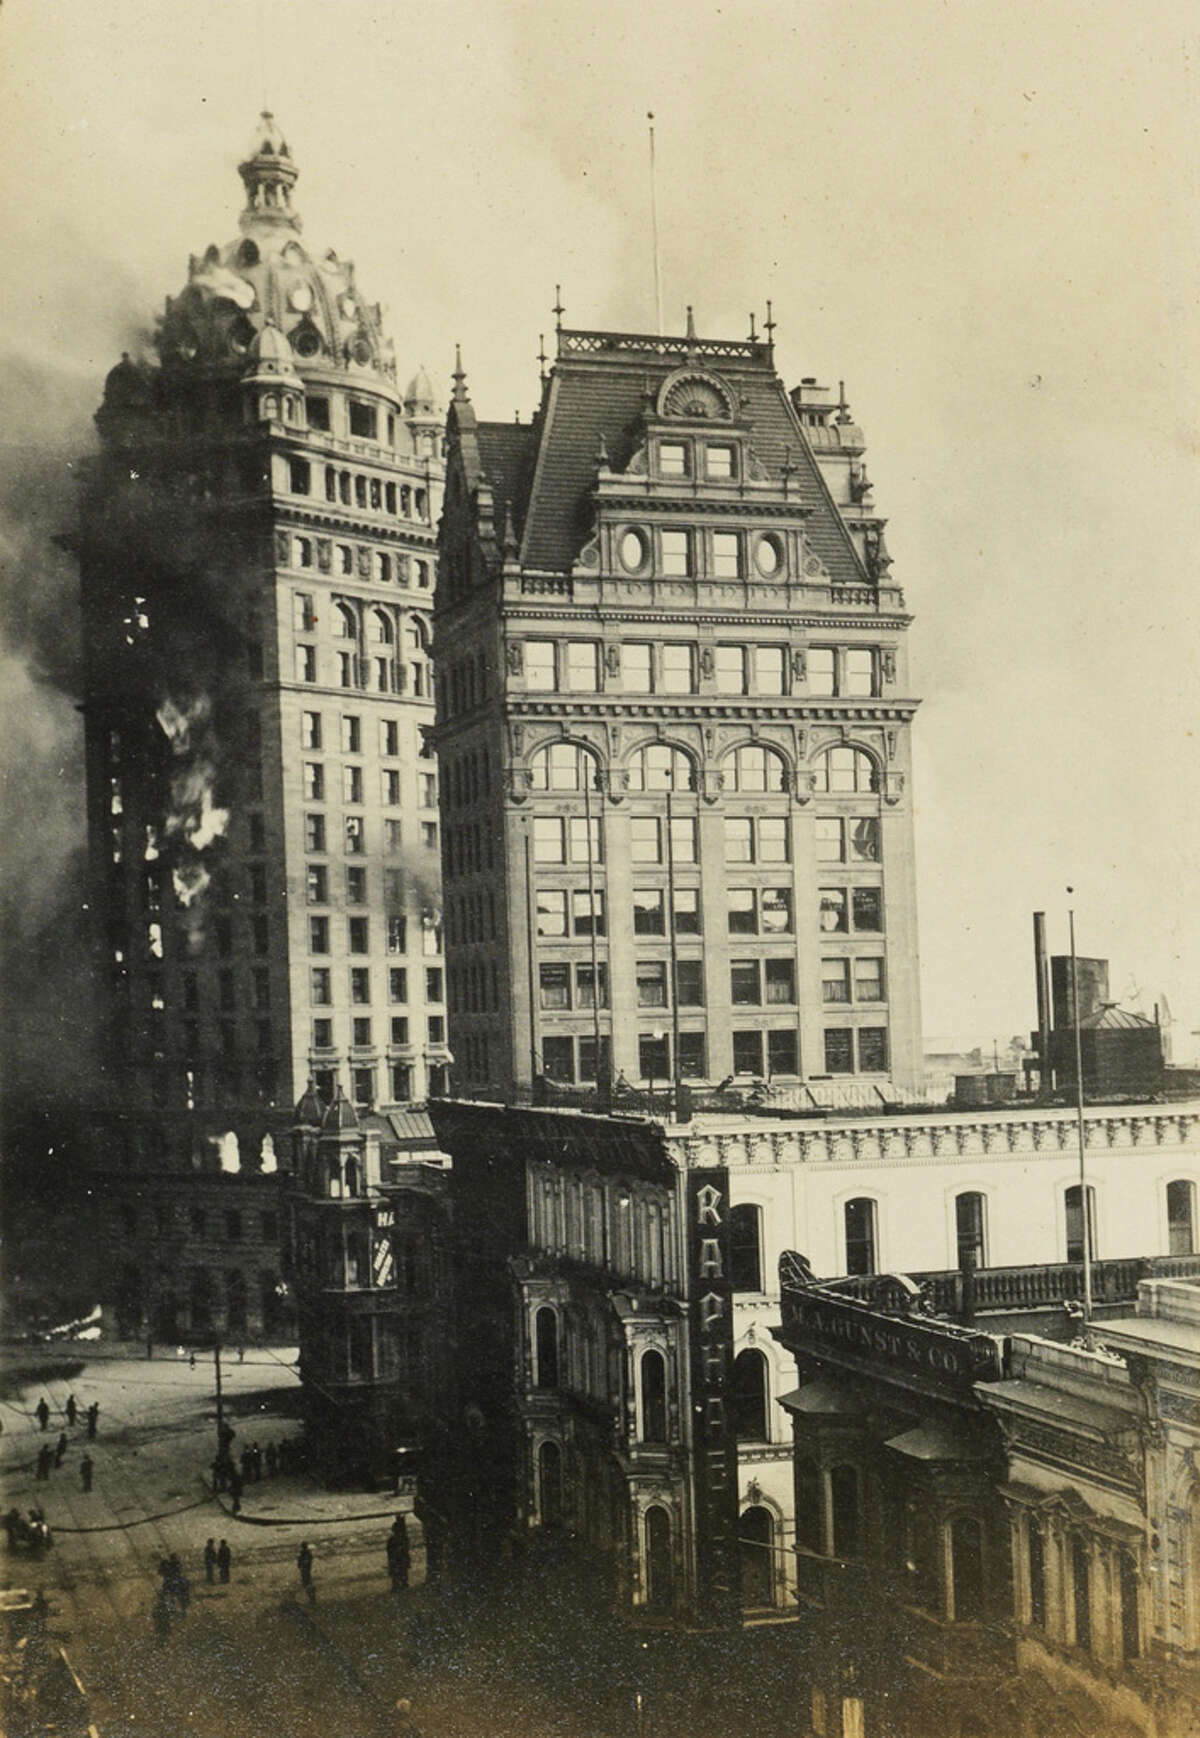 The Call Building engulfed in flames after the earthquake. The building was the tallest in the city when it was completed in 1898 and housed the San Francisco Call newspaper. After the fire, the Call moved its offices to The Montgomery.